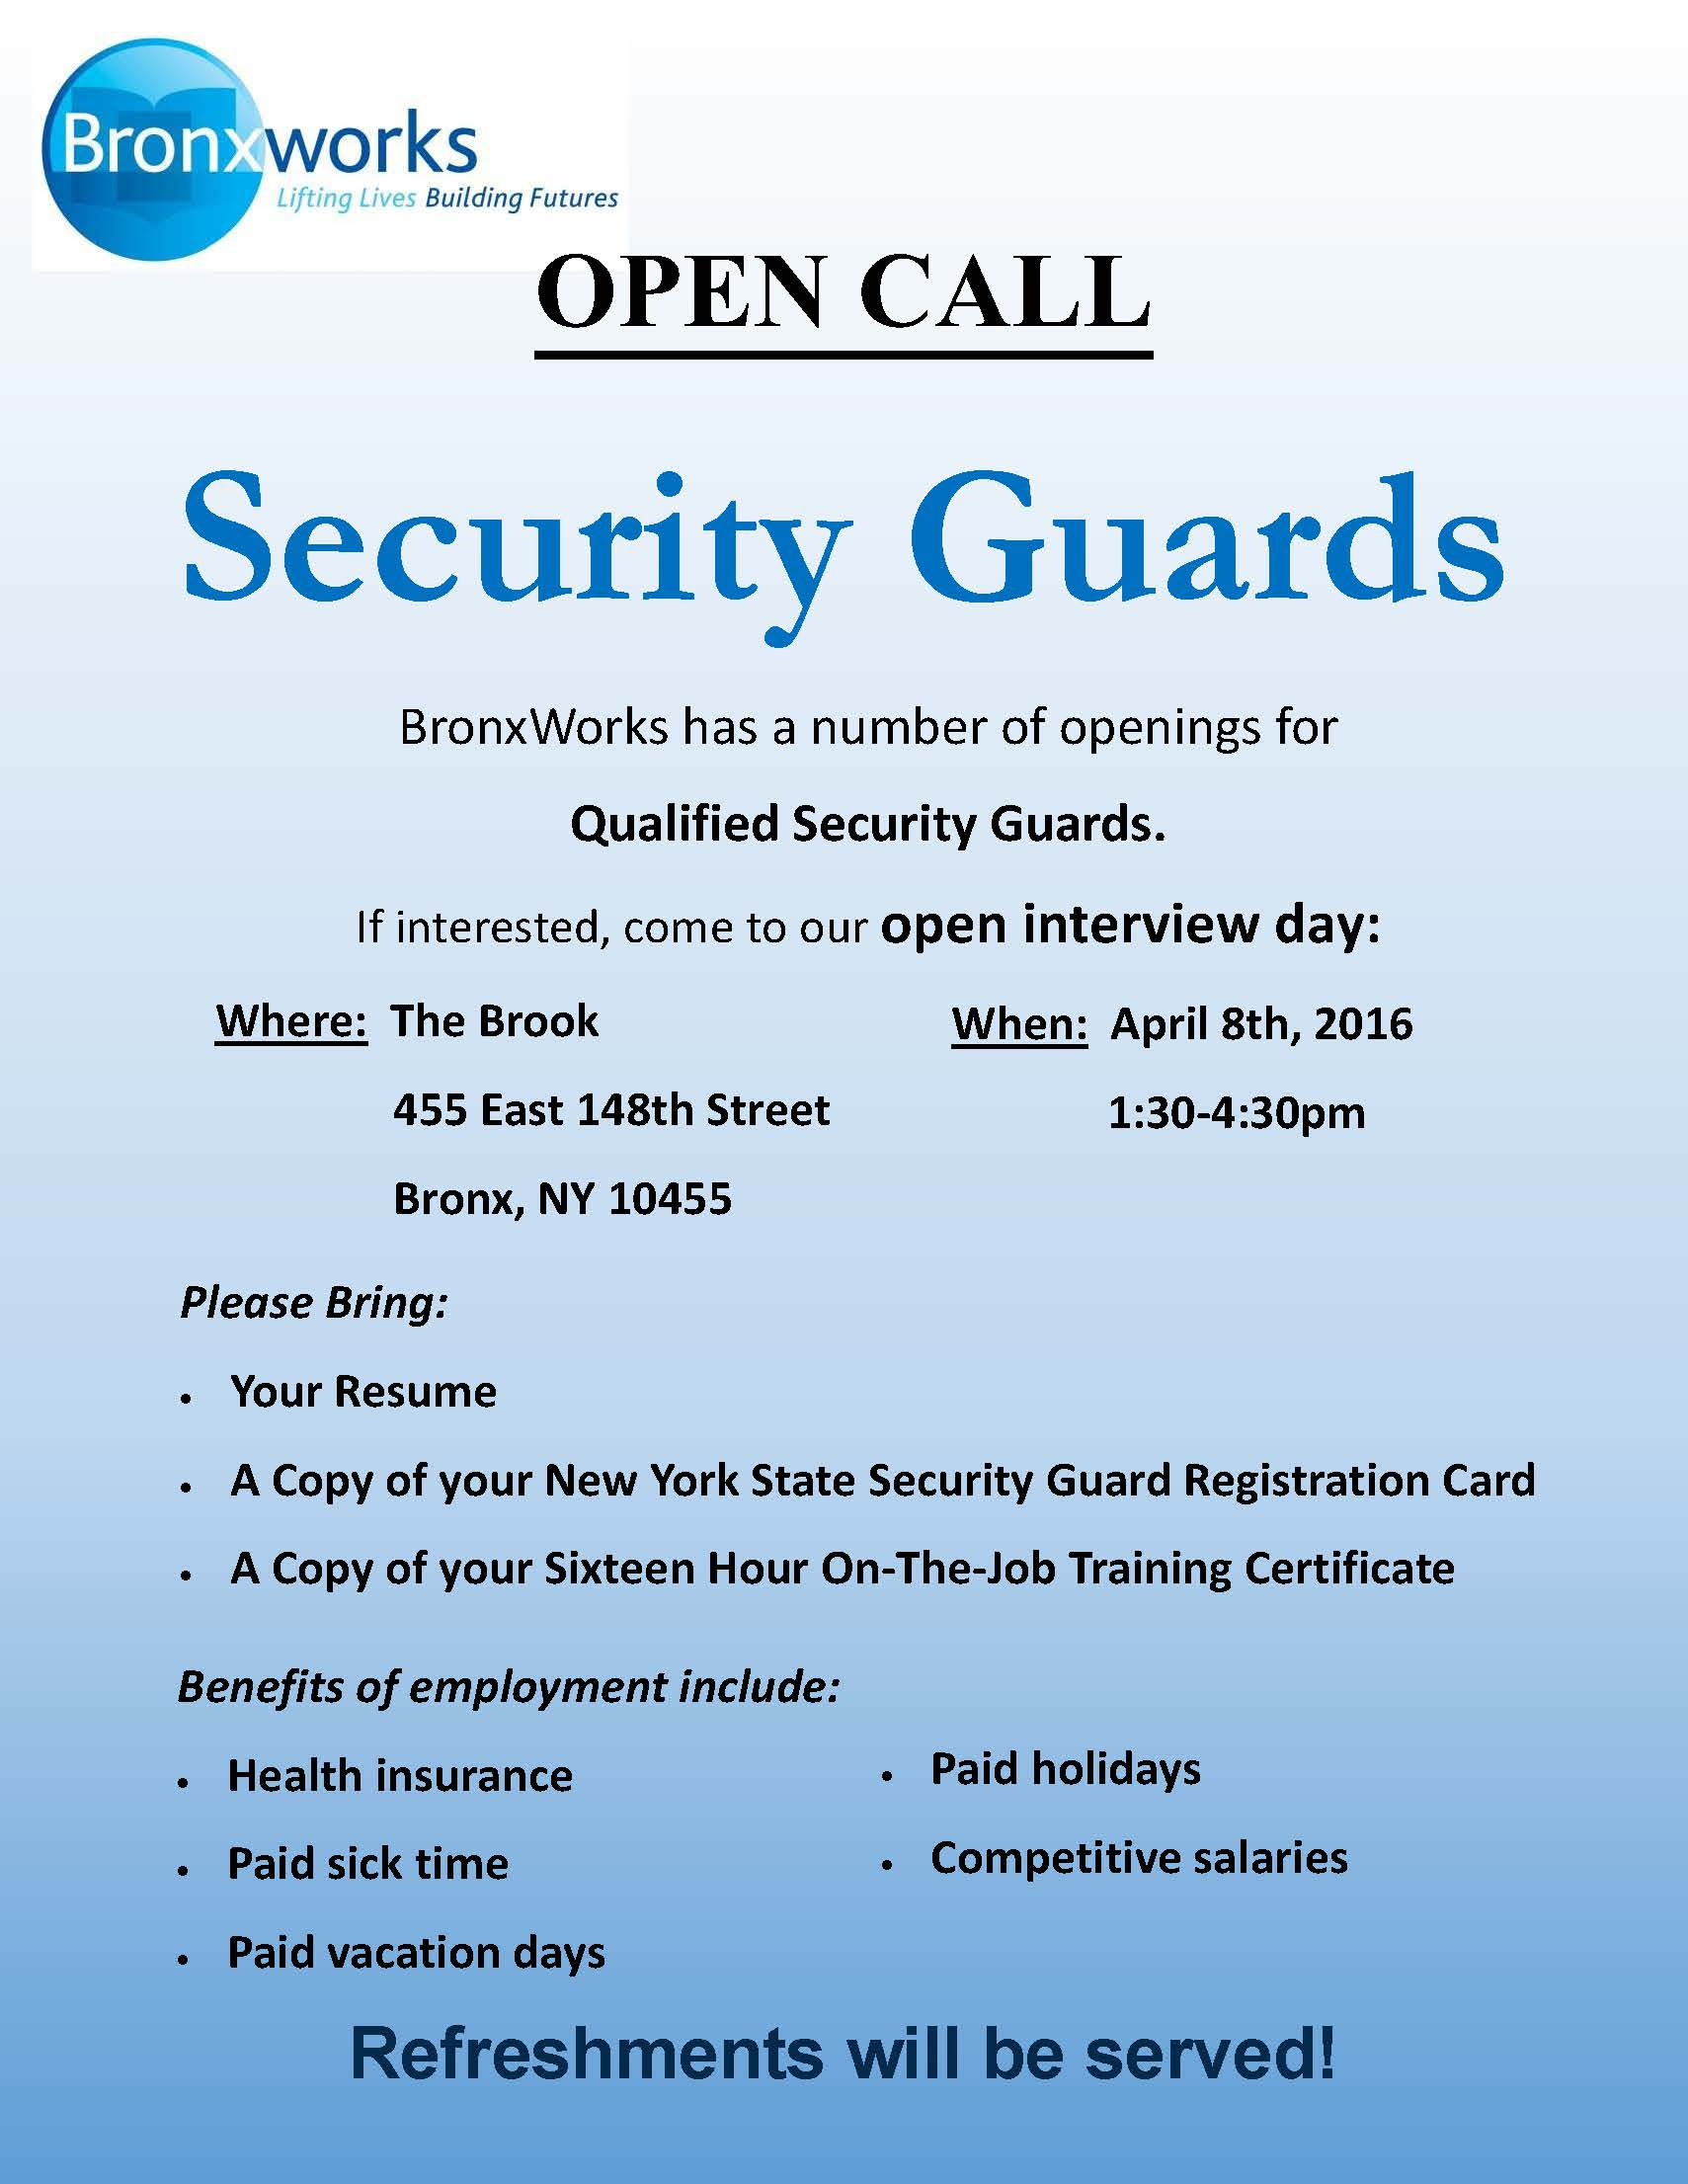 Hiring Event For Security Guards 4/8/16